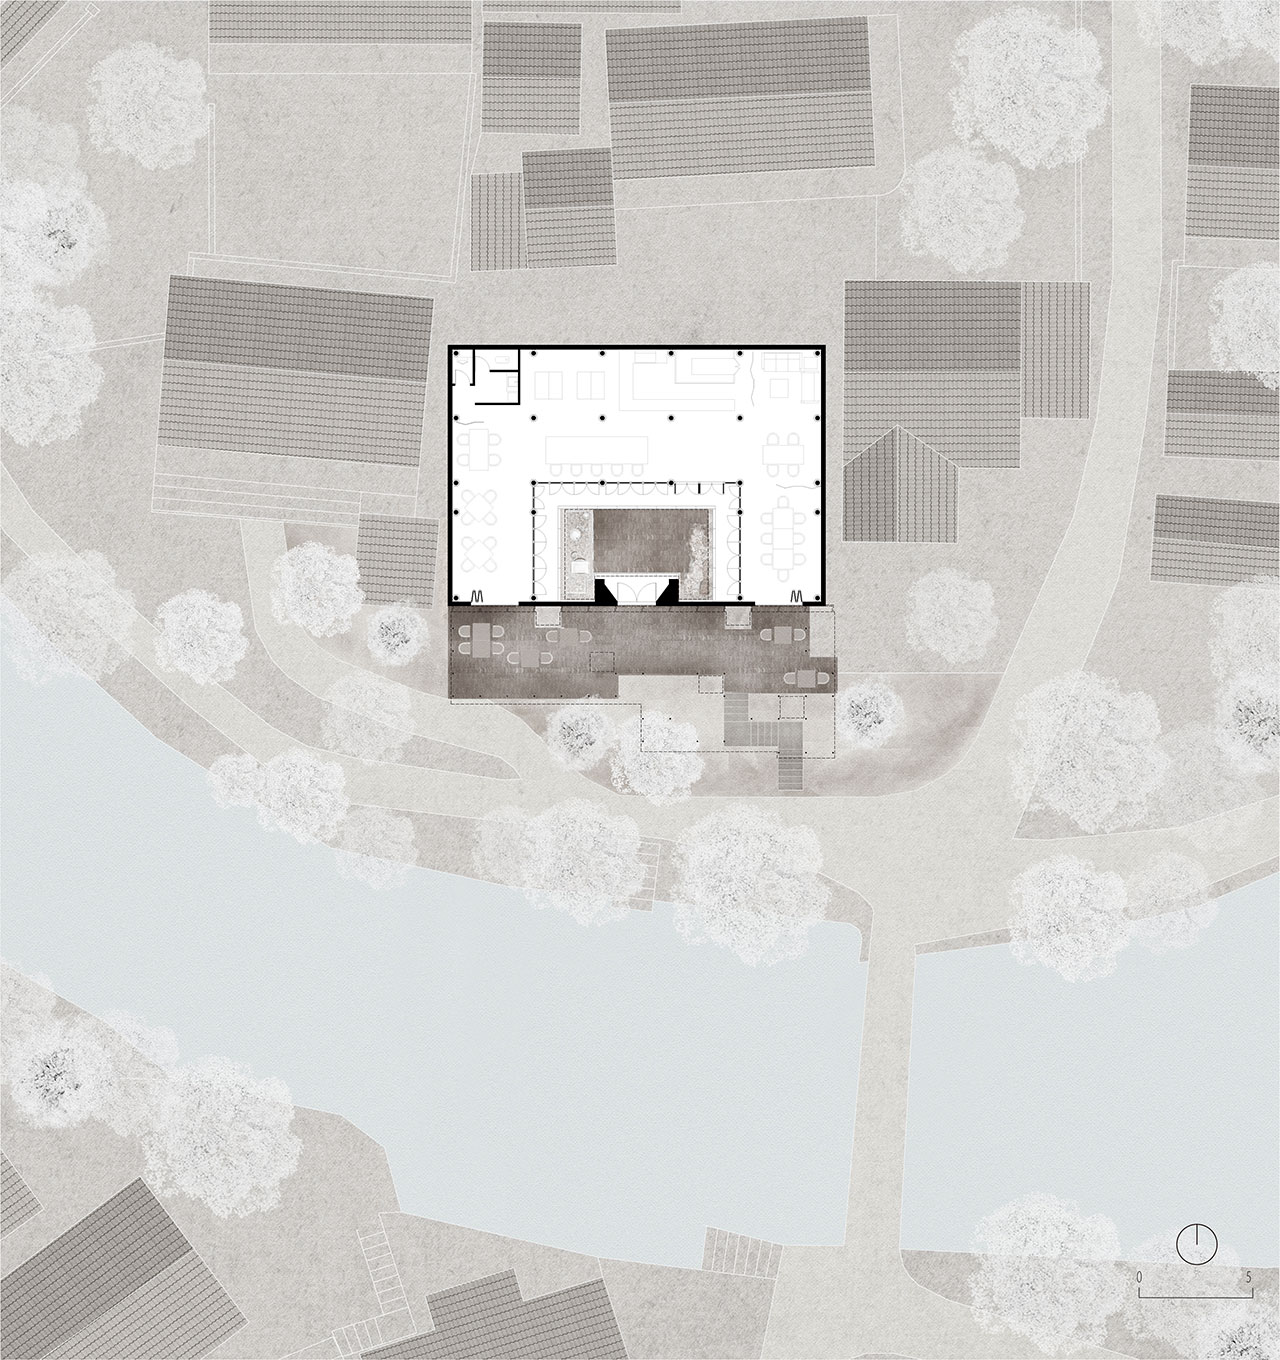 5th courtyard house first floorplan. © genarchitects.